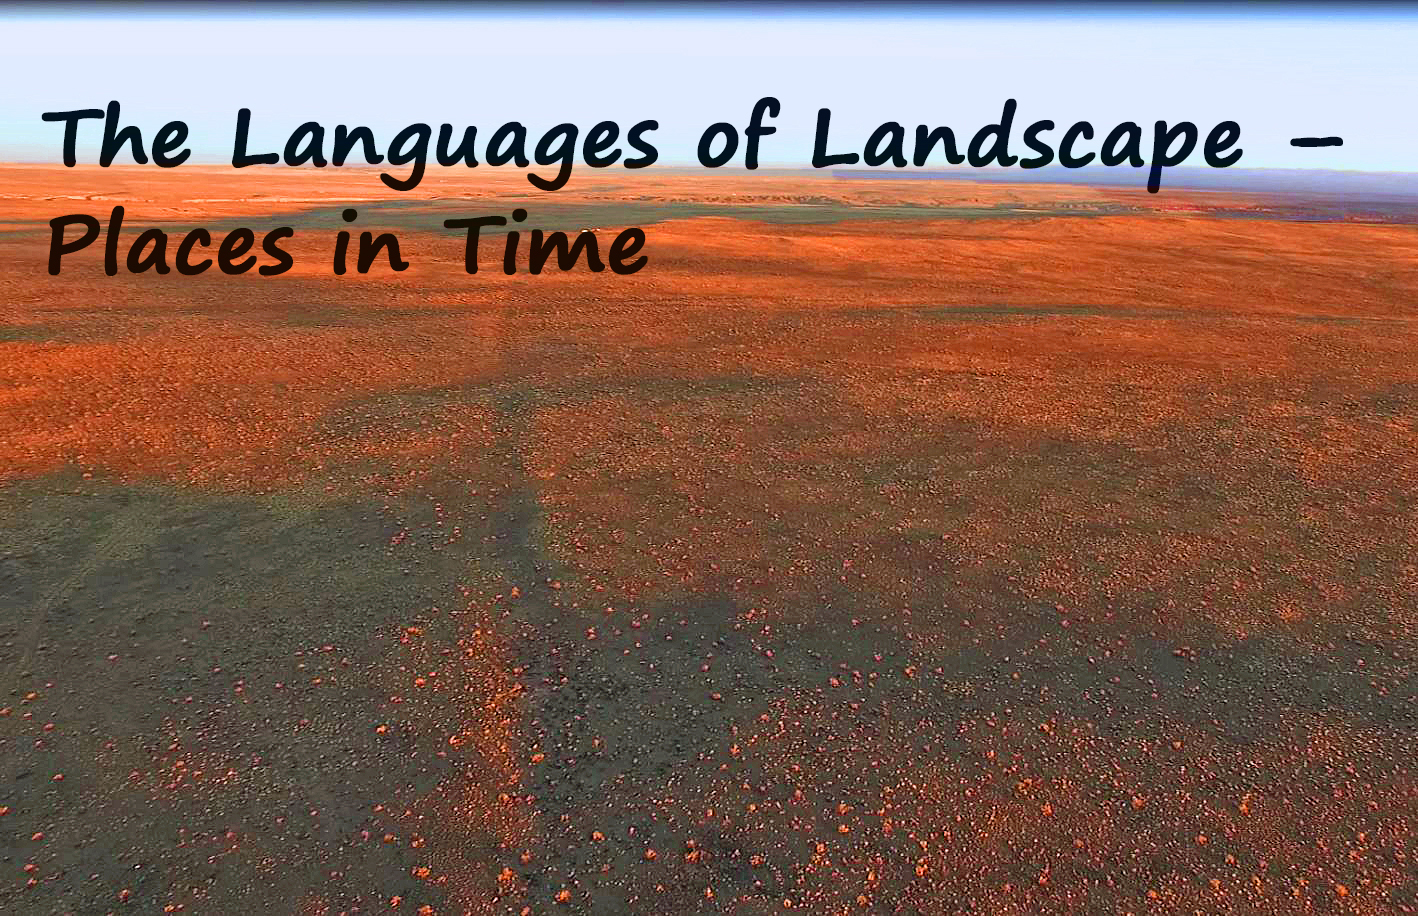 The second piece in this series of Cloudy Ridge Productions' Languages of Landscape series explores how ancient cultures may have looked at the concept of time relative with our narrow and linear concept of time based on the Gregorian calendar.